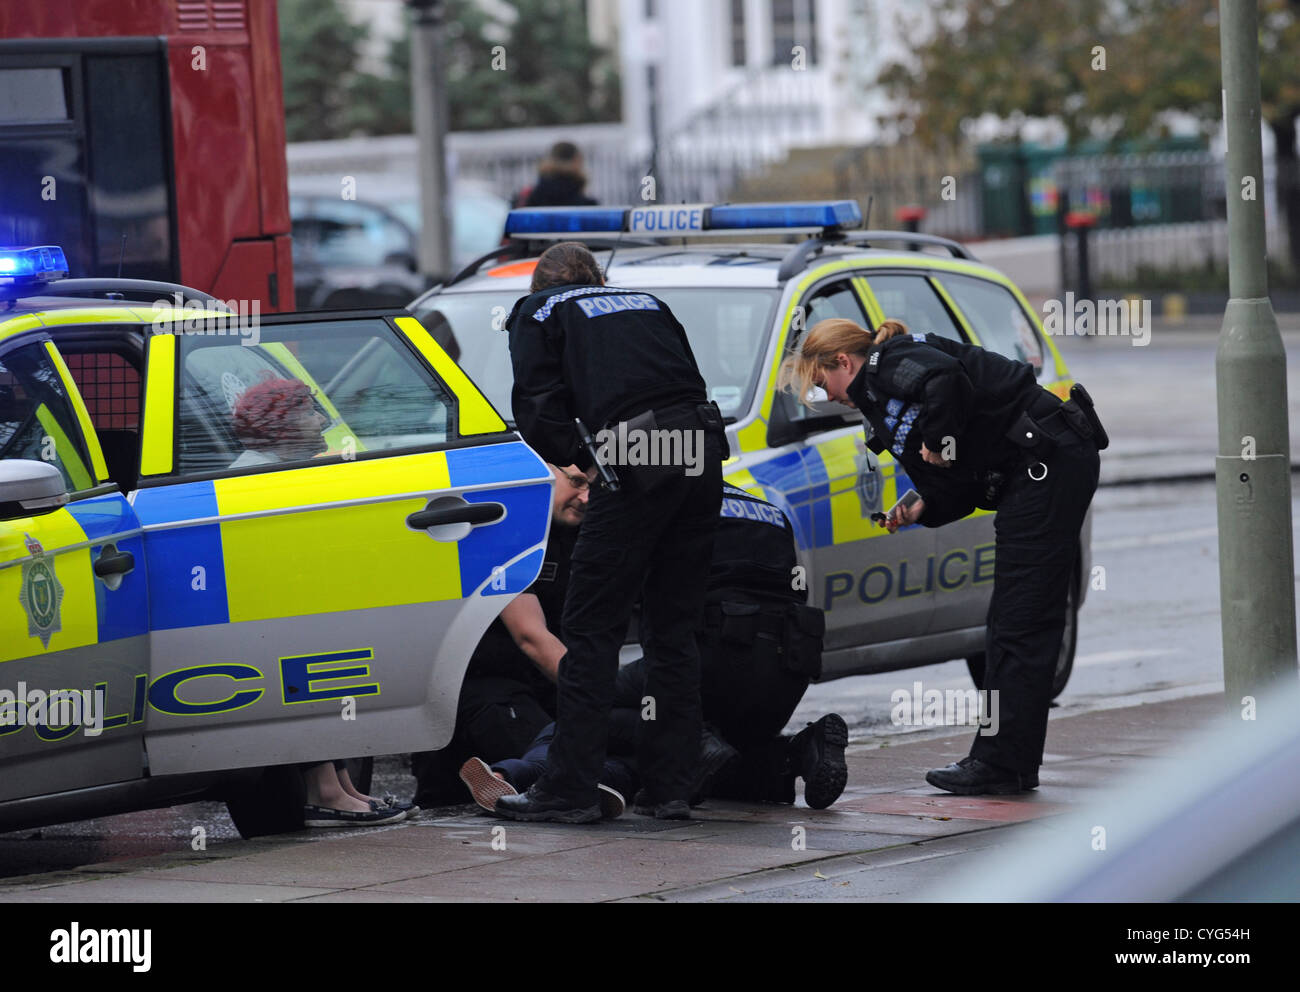 Brighton Sussex UK 4 November 2012 - Police make an arrest outside the Sainsbury's Local store in St James's - Stock Image